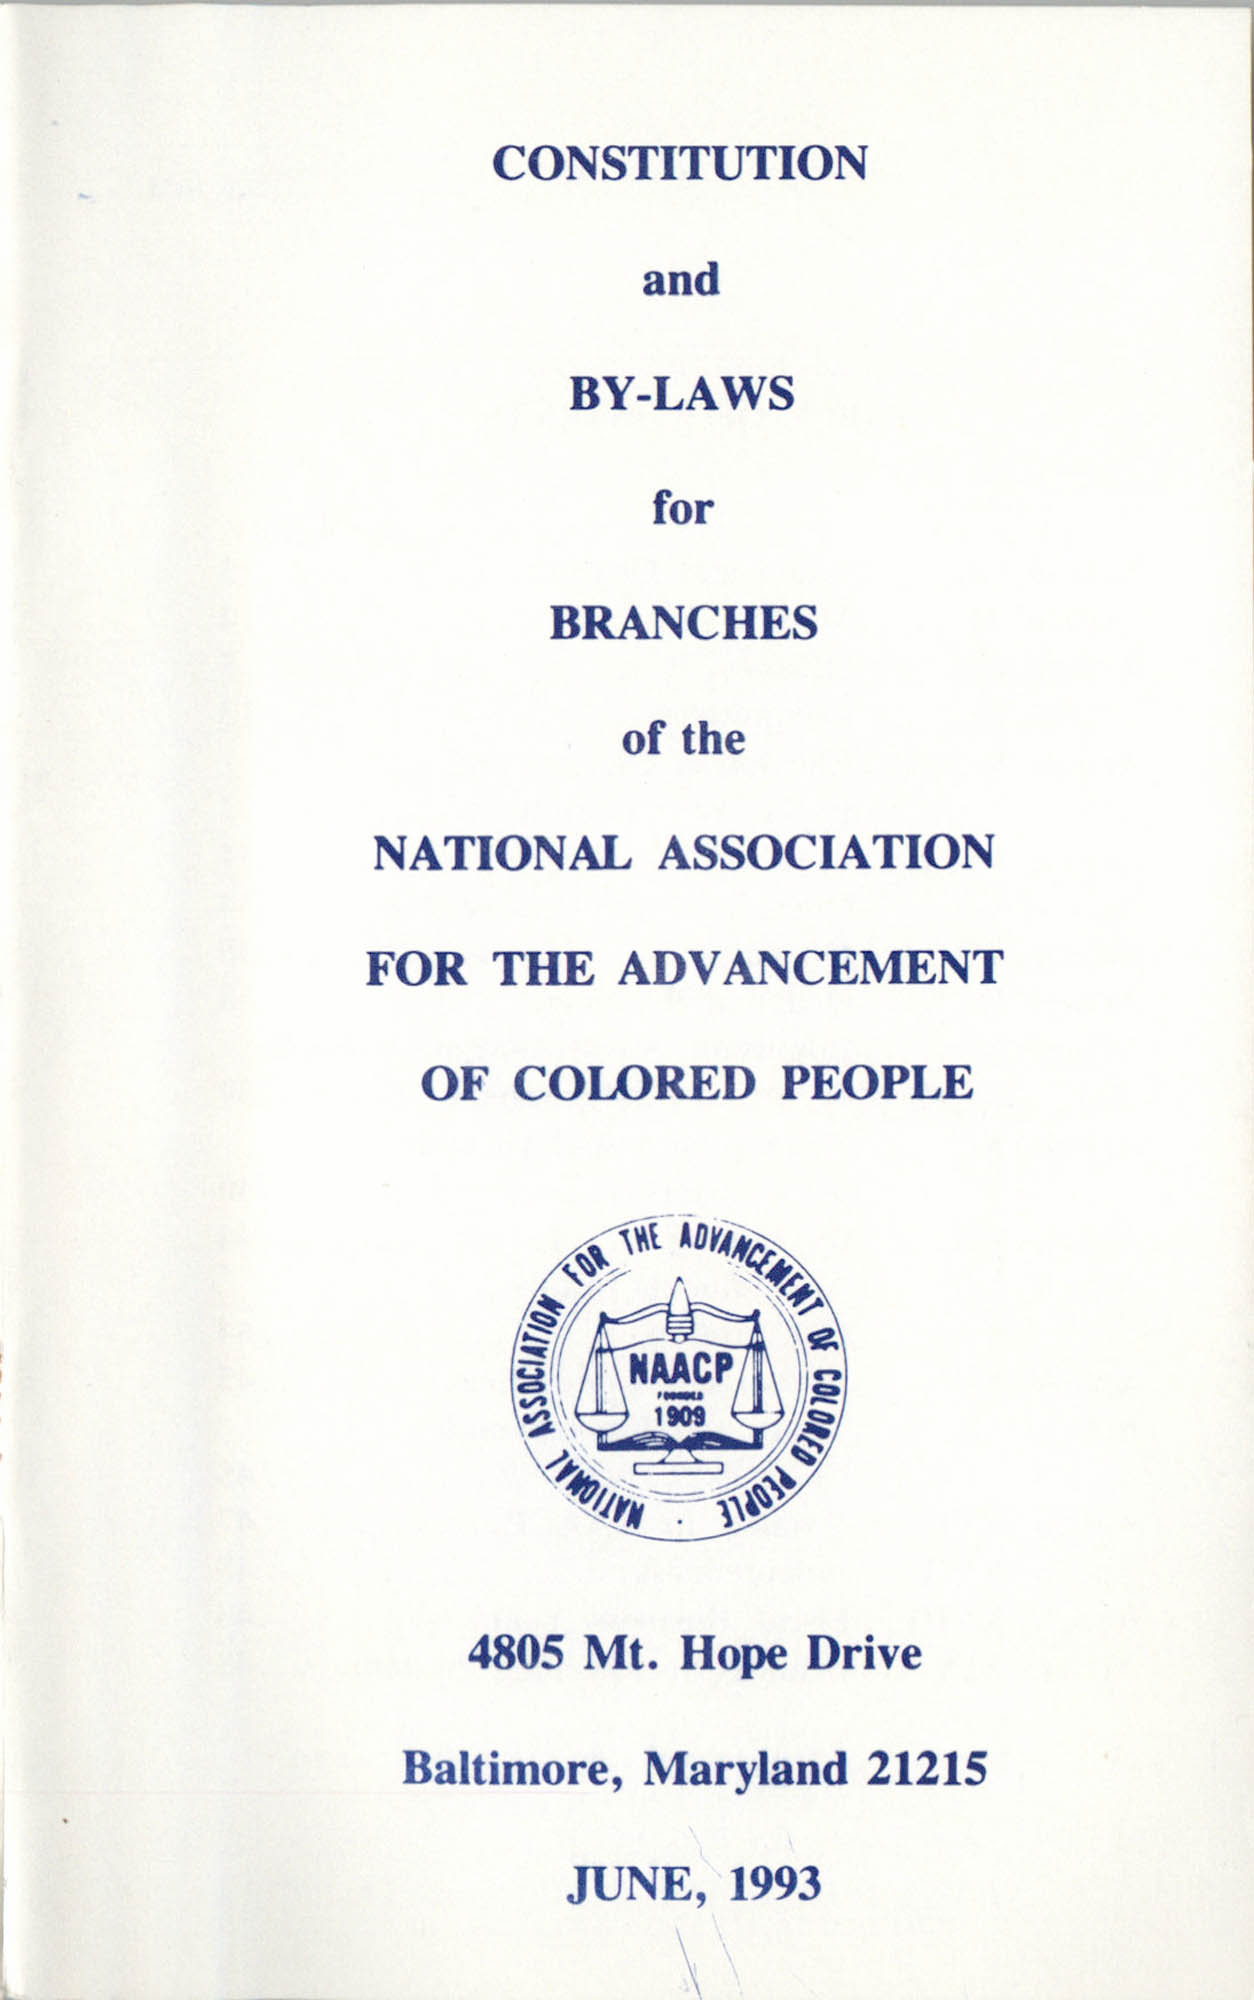 Constitution and By-Laws for Branches of the NAACP, June 1993, Cover